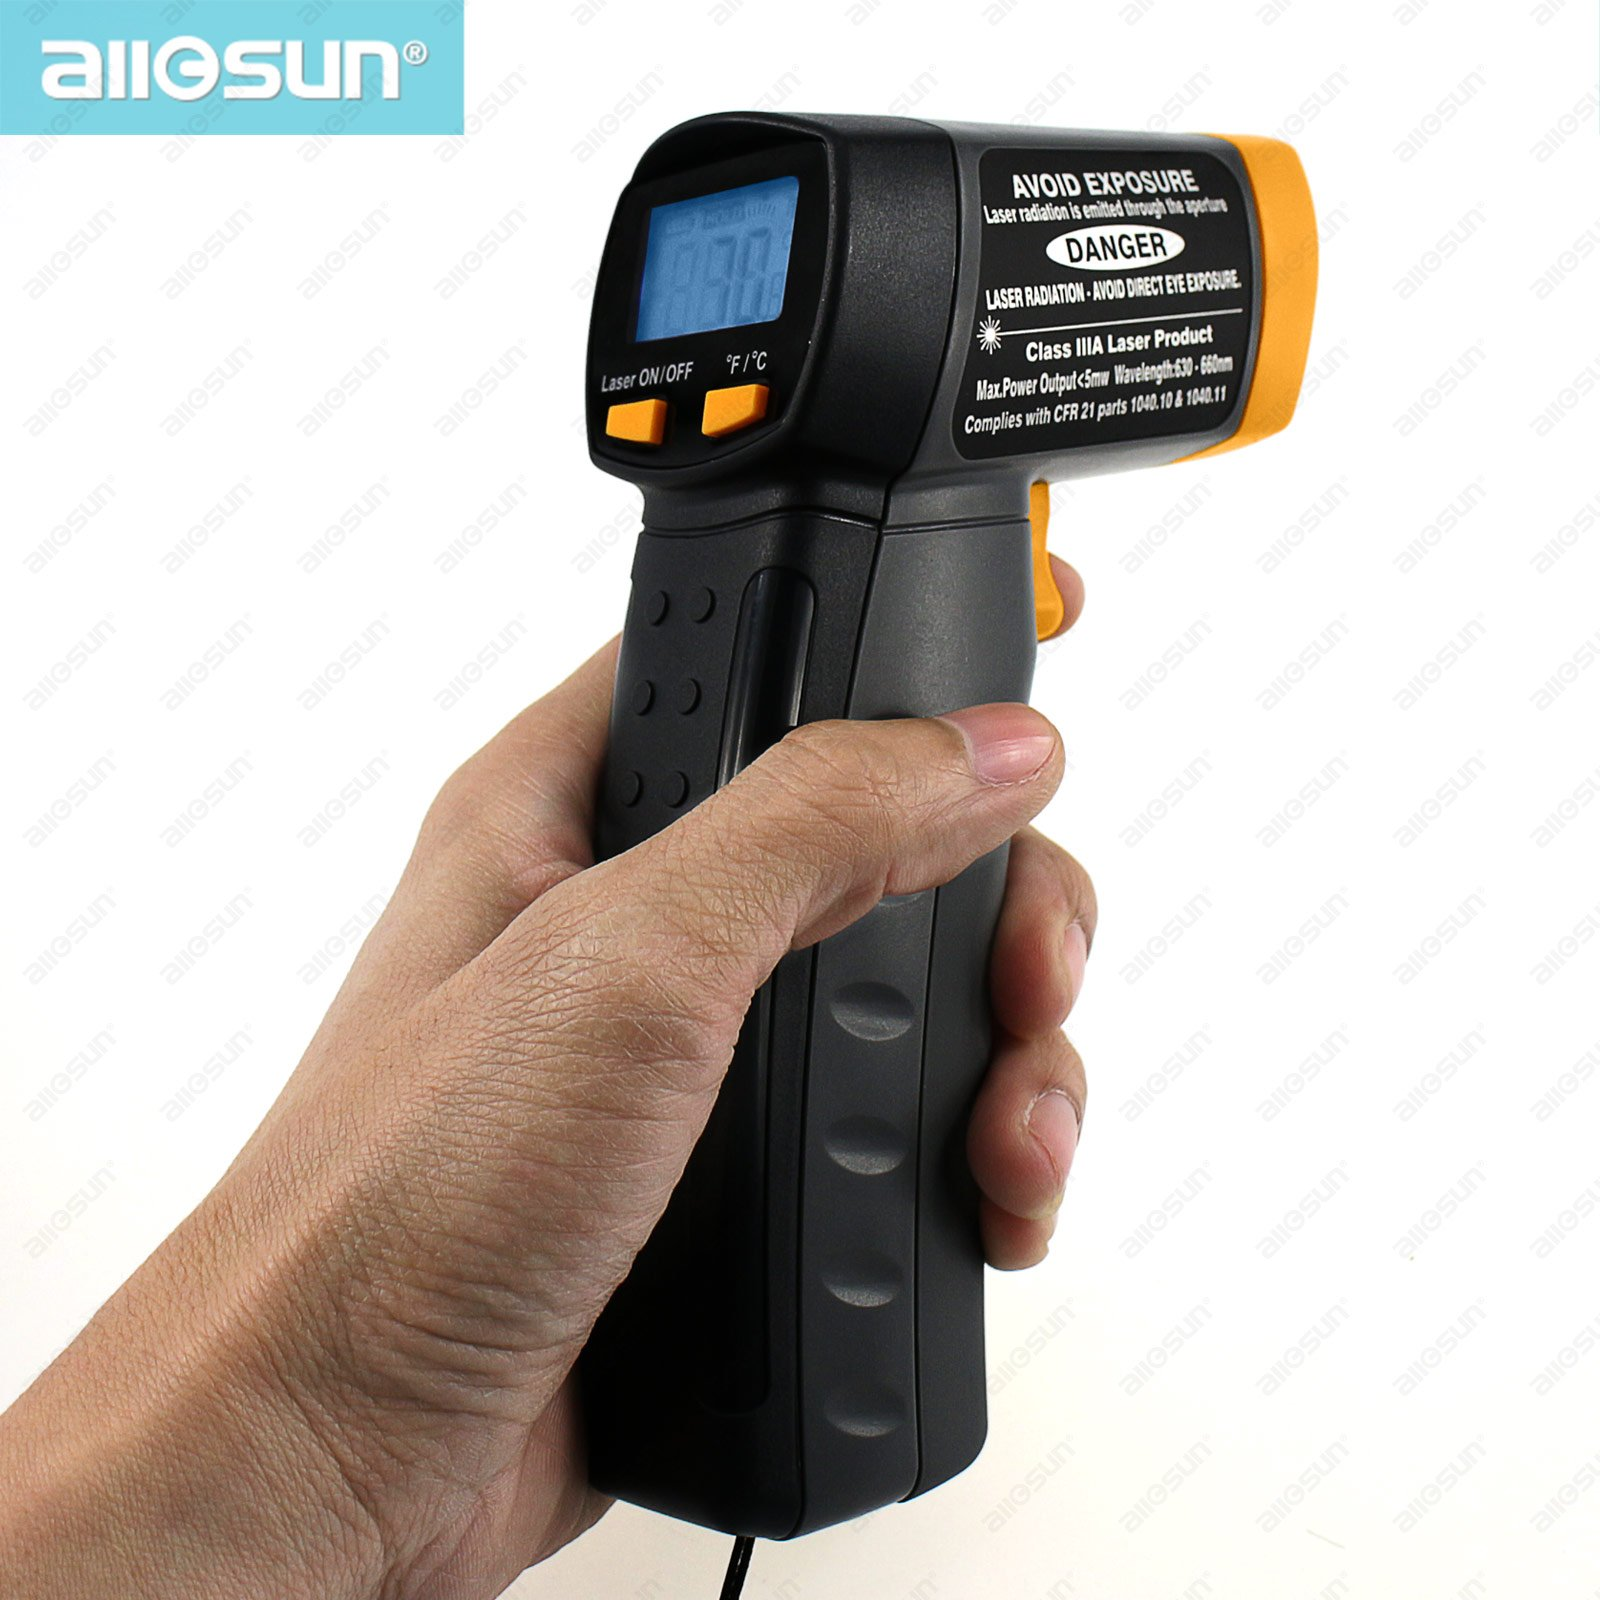 all-sun EM520A Non-contact Infrared Thermometer Portable Temperatures Meter Practical Digital Laser Tester<br><br>Aliexpress